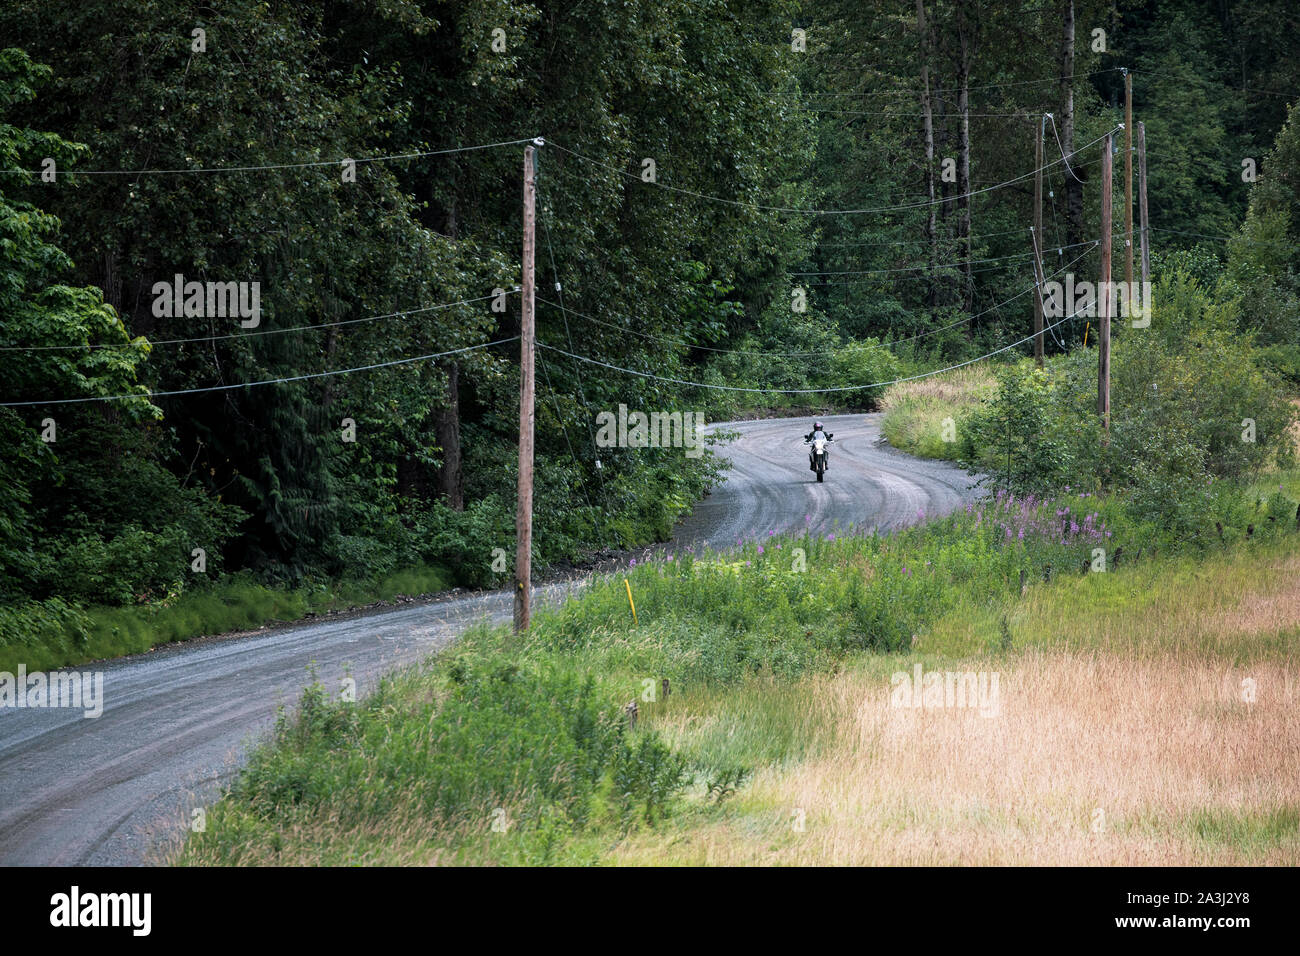 A women rides her motocycle on a gravel road in Canada. Stock Photo